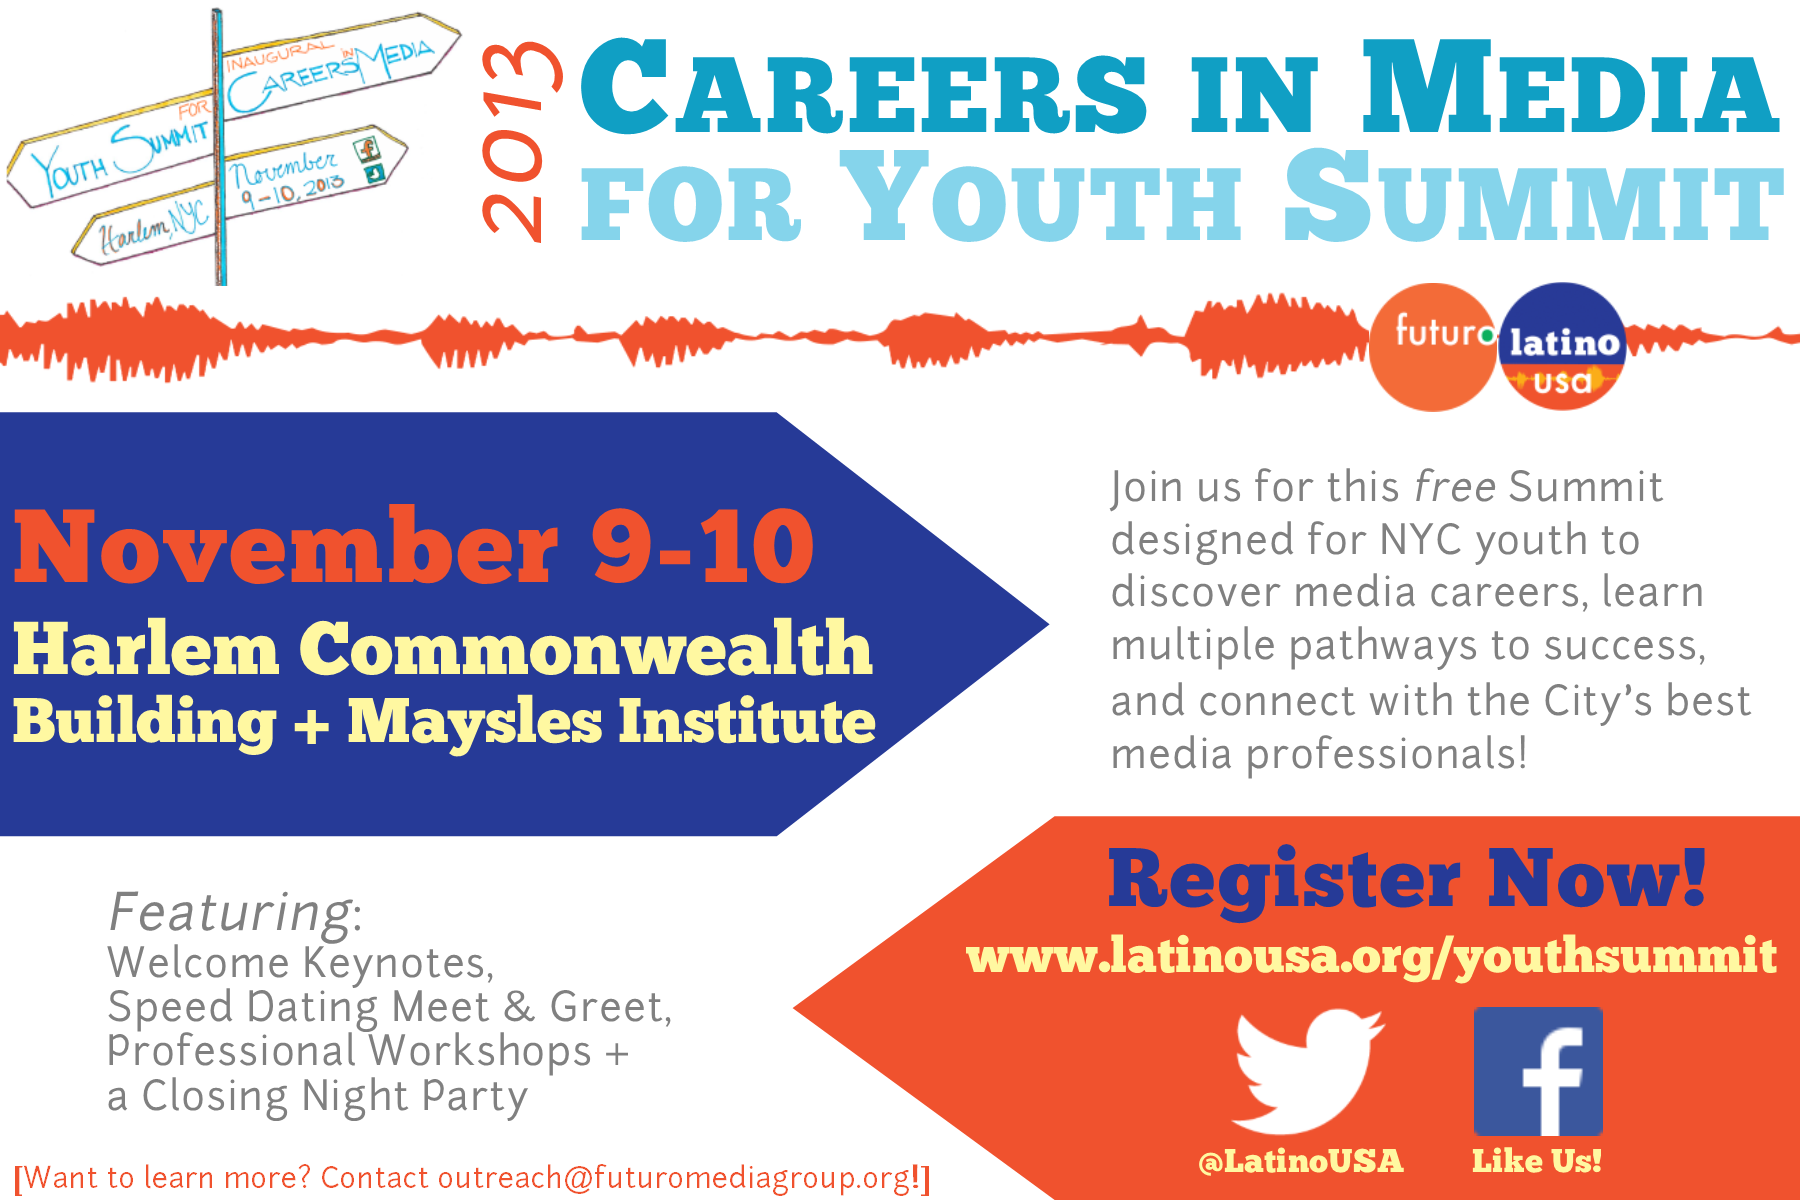 Careers in Media for Youth Summit